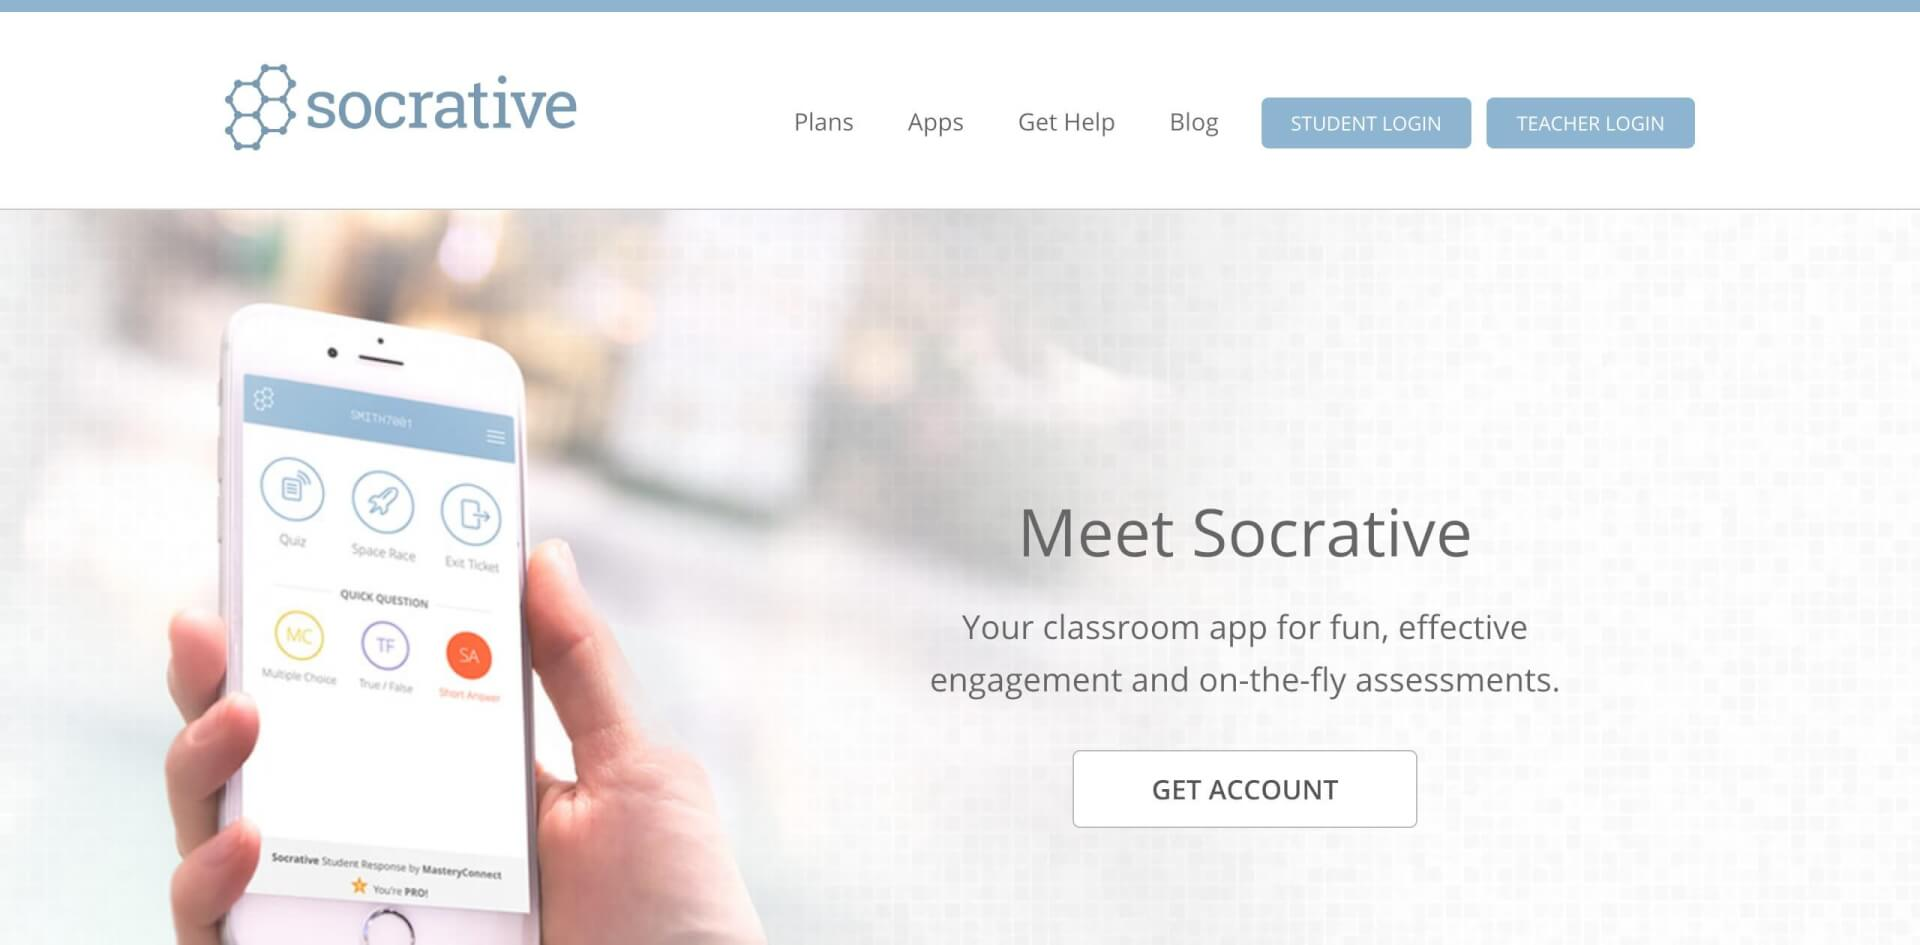 Socrative Interaktiver Vortrag Schueler Studenten JSS Digital 1